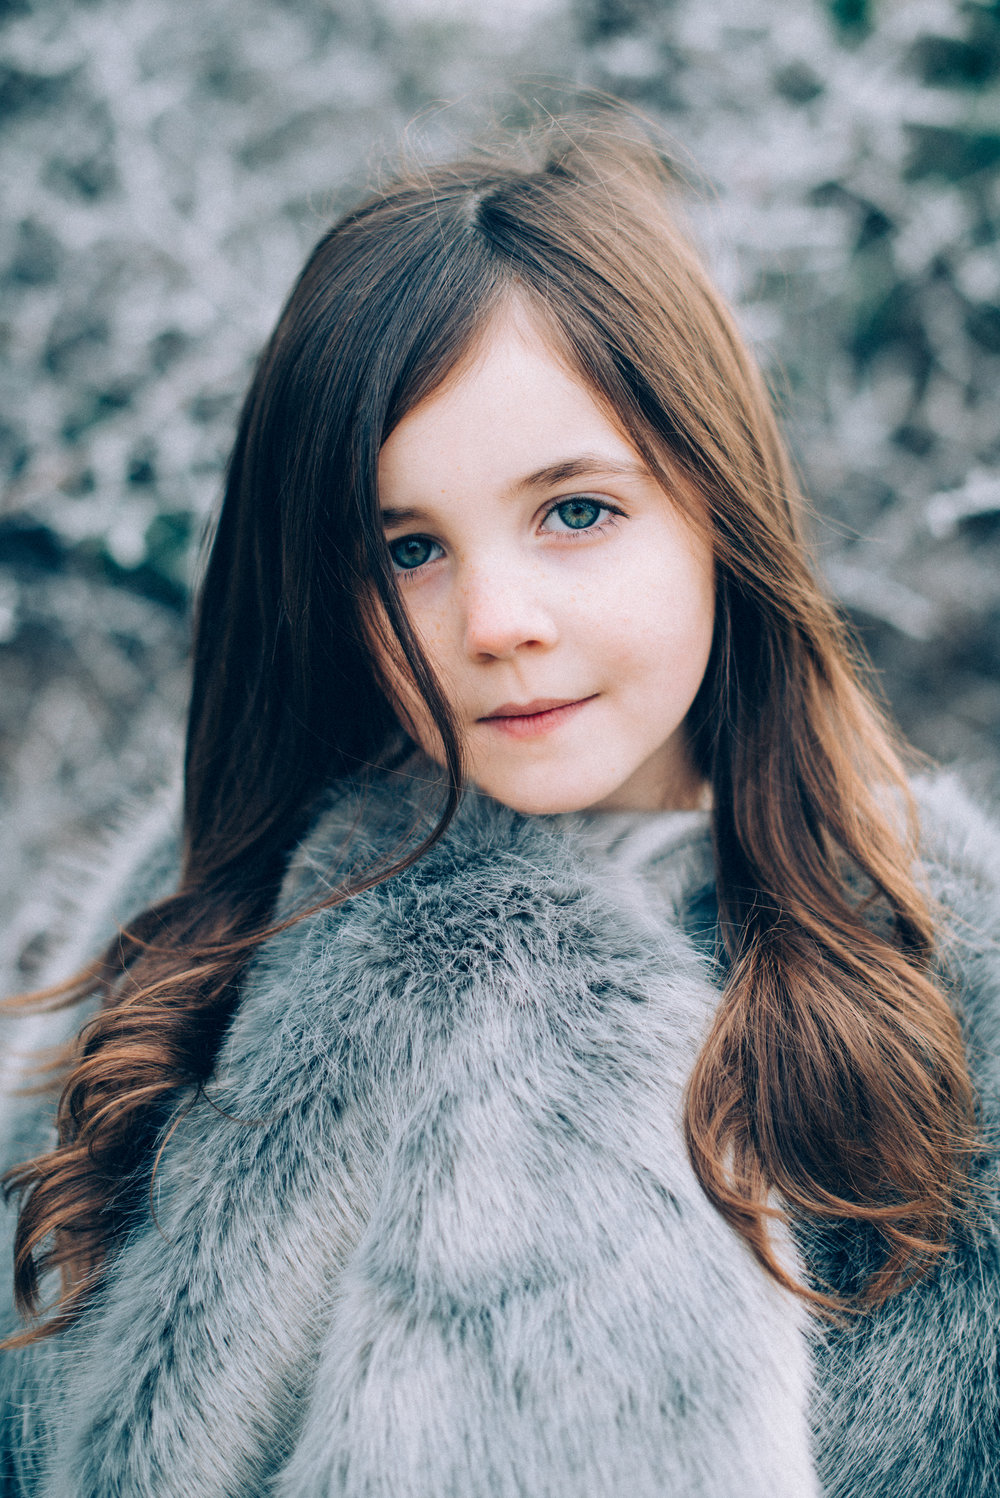 Chloe 6 Year Frozen Shoot-12.jpg